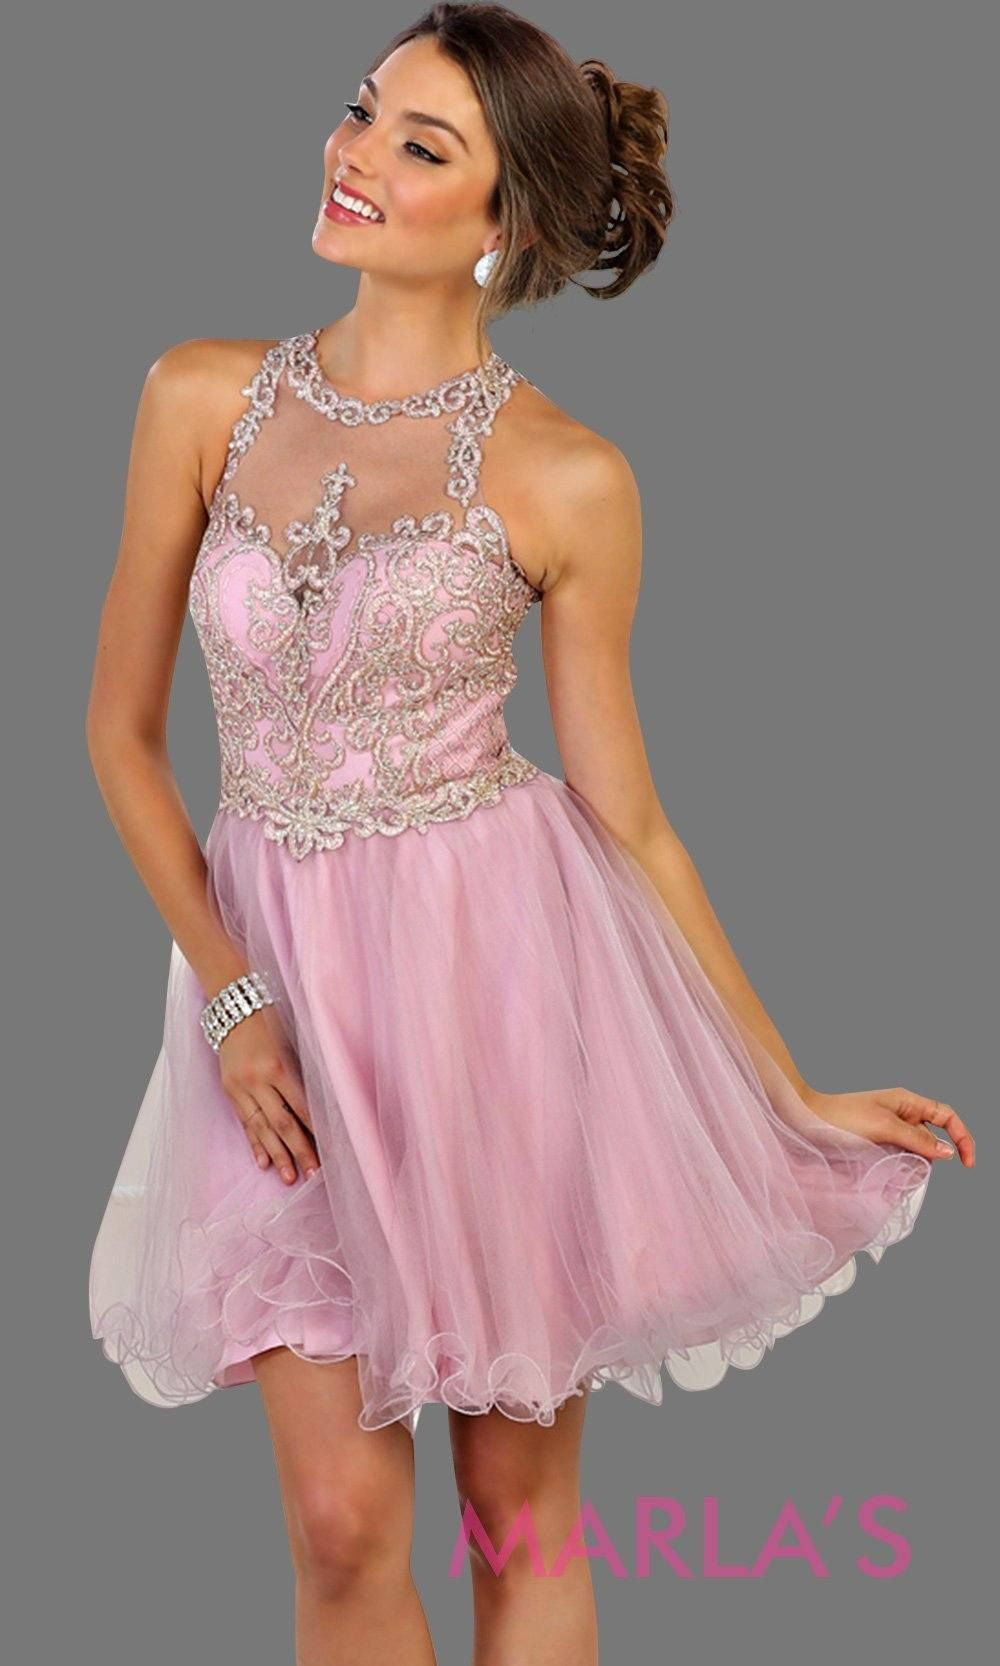 86afb8fe5a8 Short high neck puffy mauve dress with lace top. Perfect for grade 8 grad